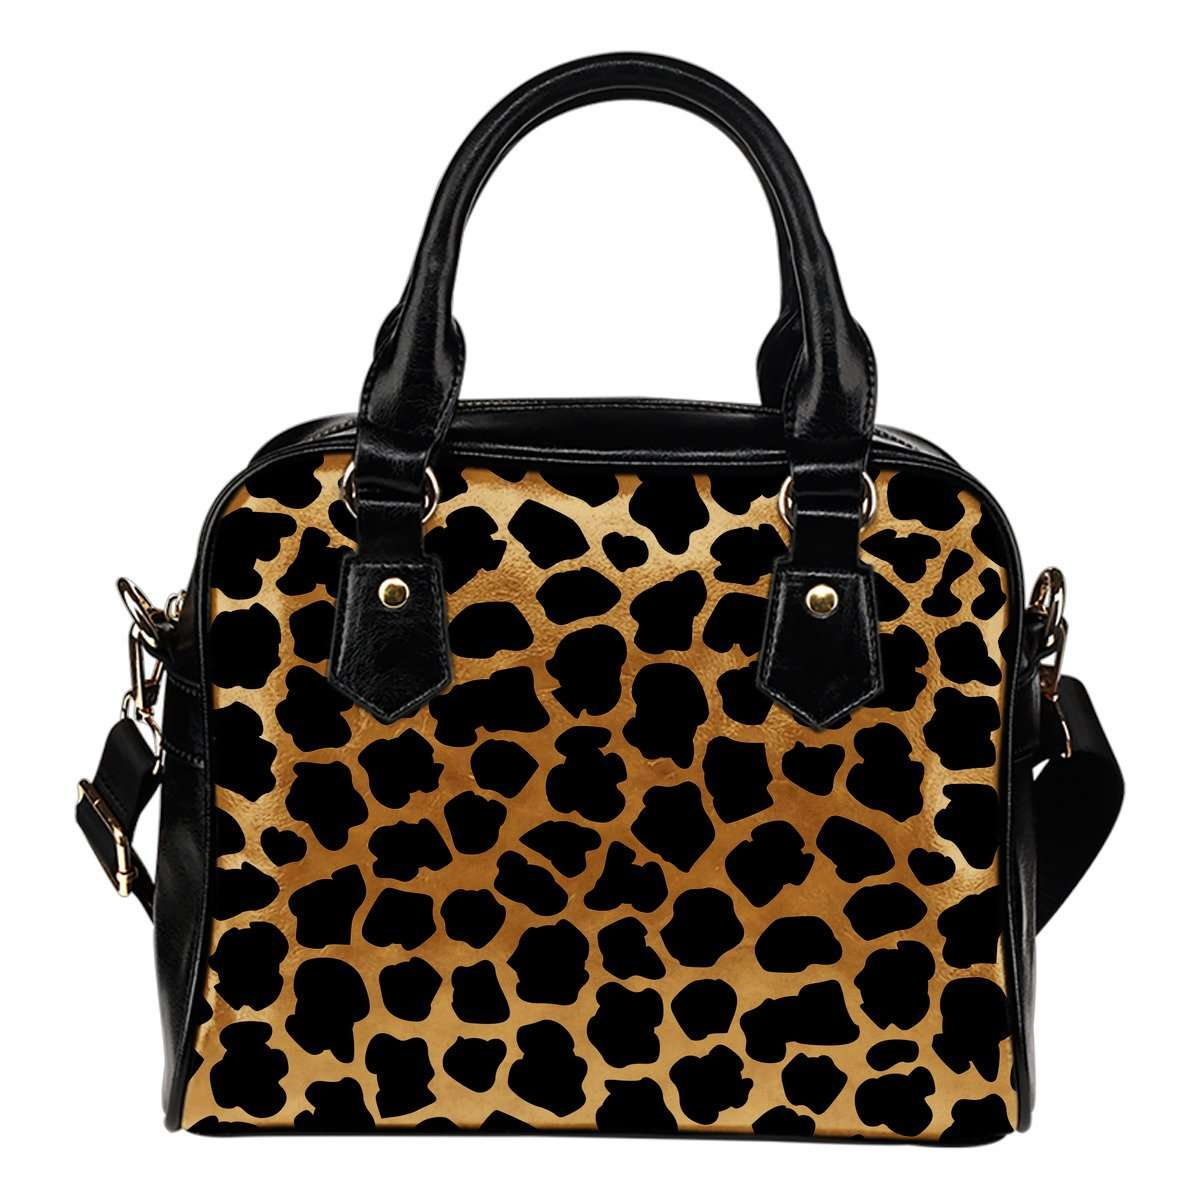 Animal Prints Cheetah Theme Women Fashion Shoulder Handbag Black Vegan Faux Leather